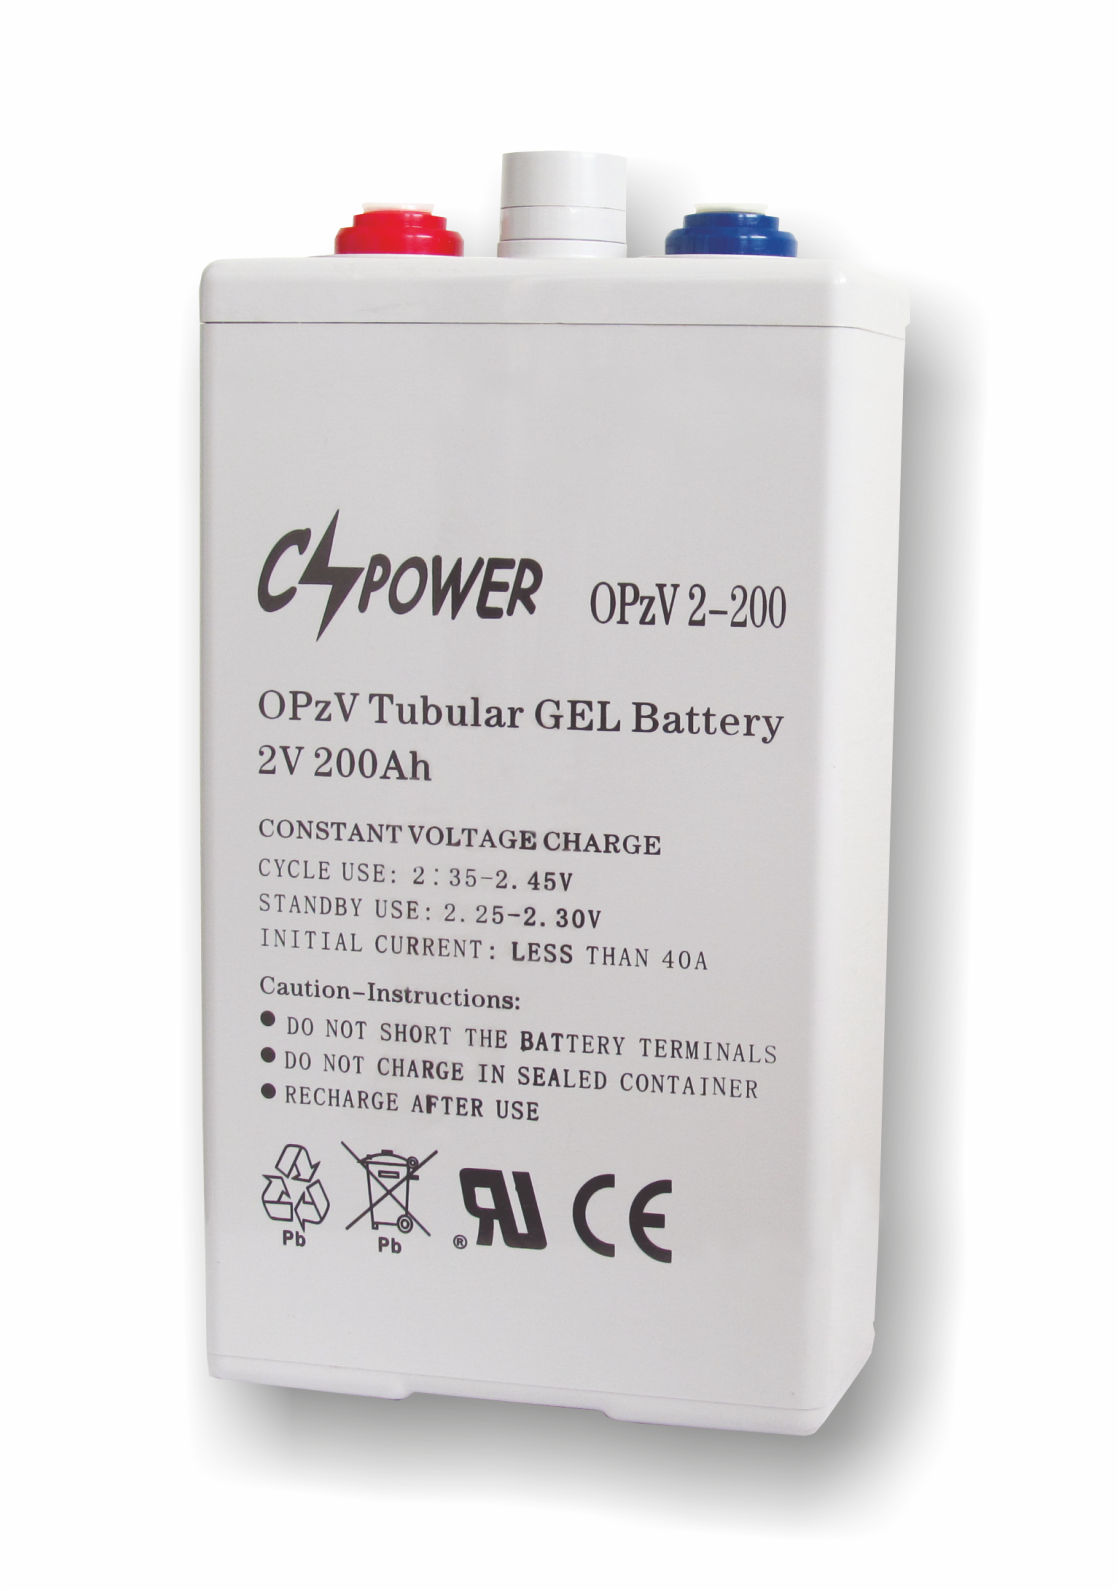 CS Power OVzV 2-200